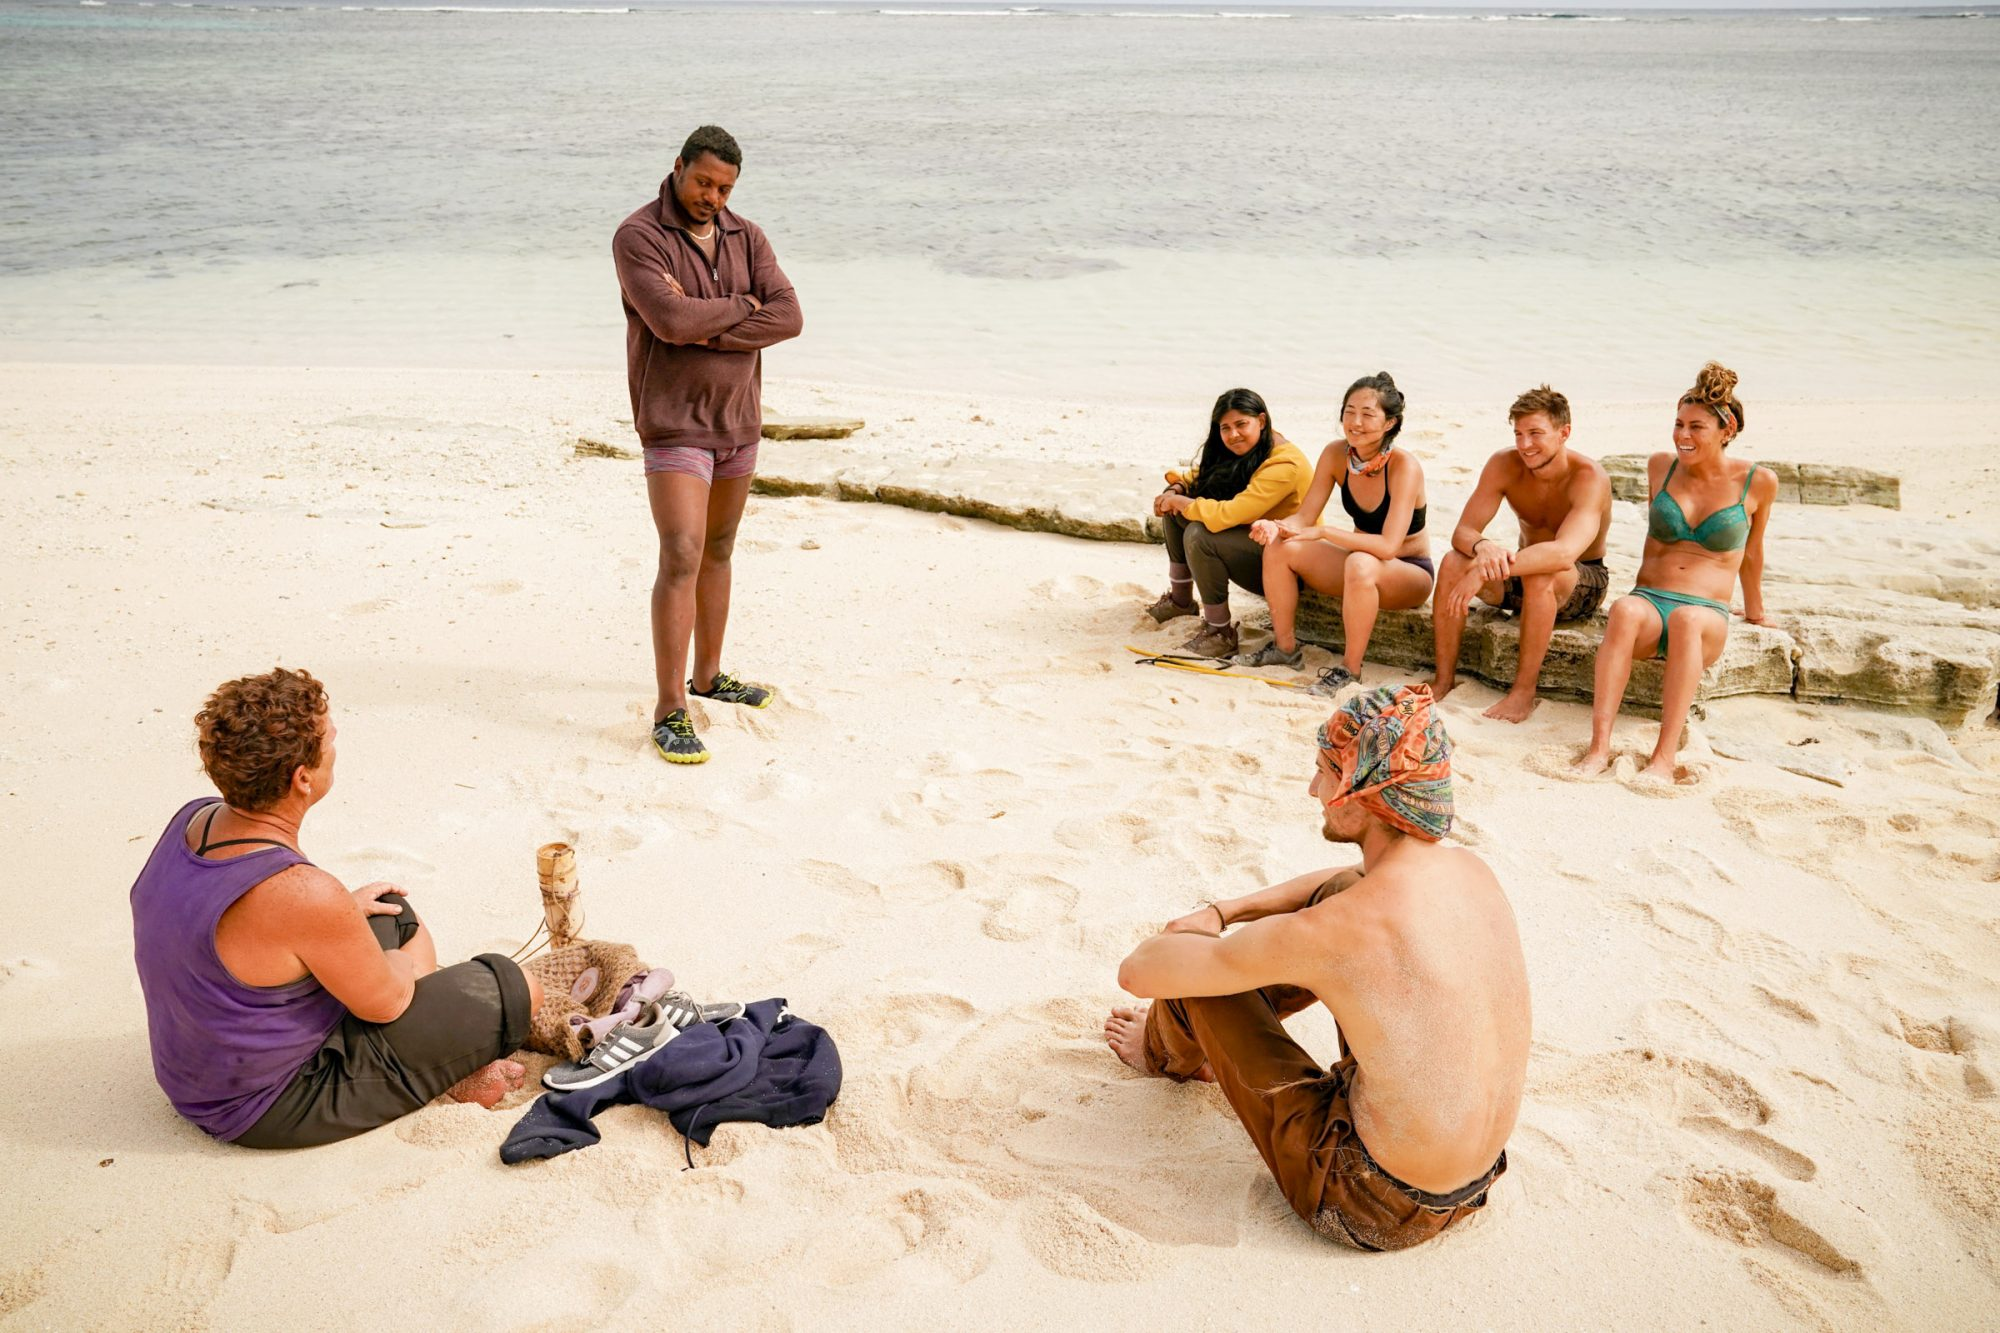 SURVIVOR: Island of Idols